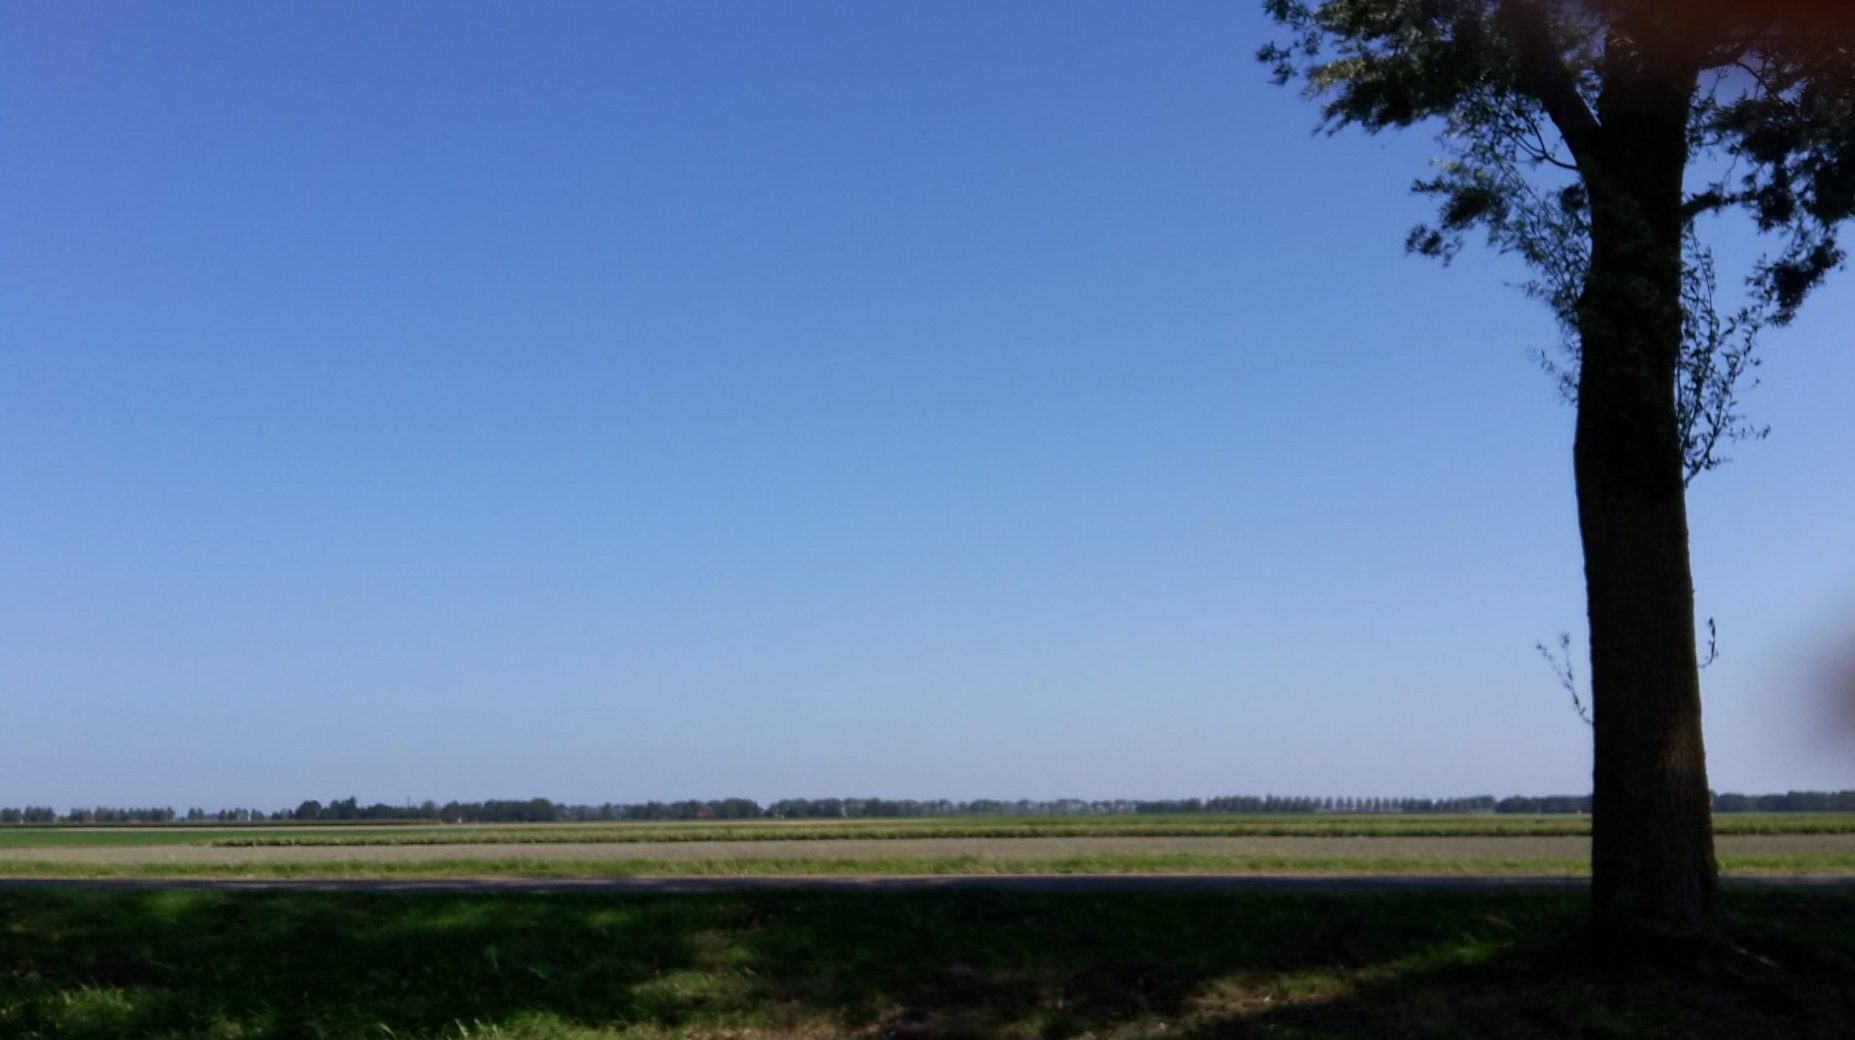 A clear-sky day on my commute to Leeuwarden.